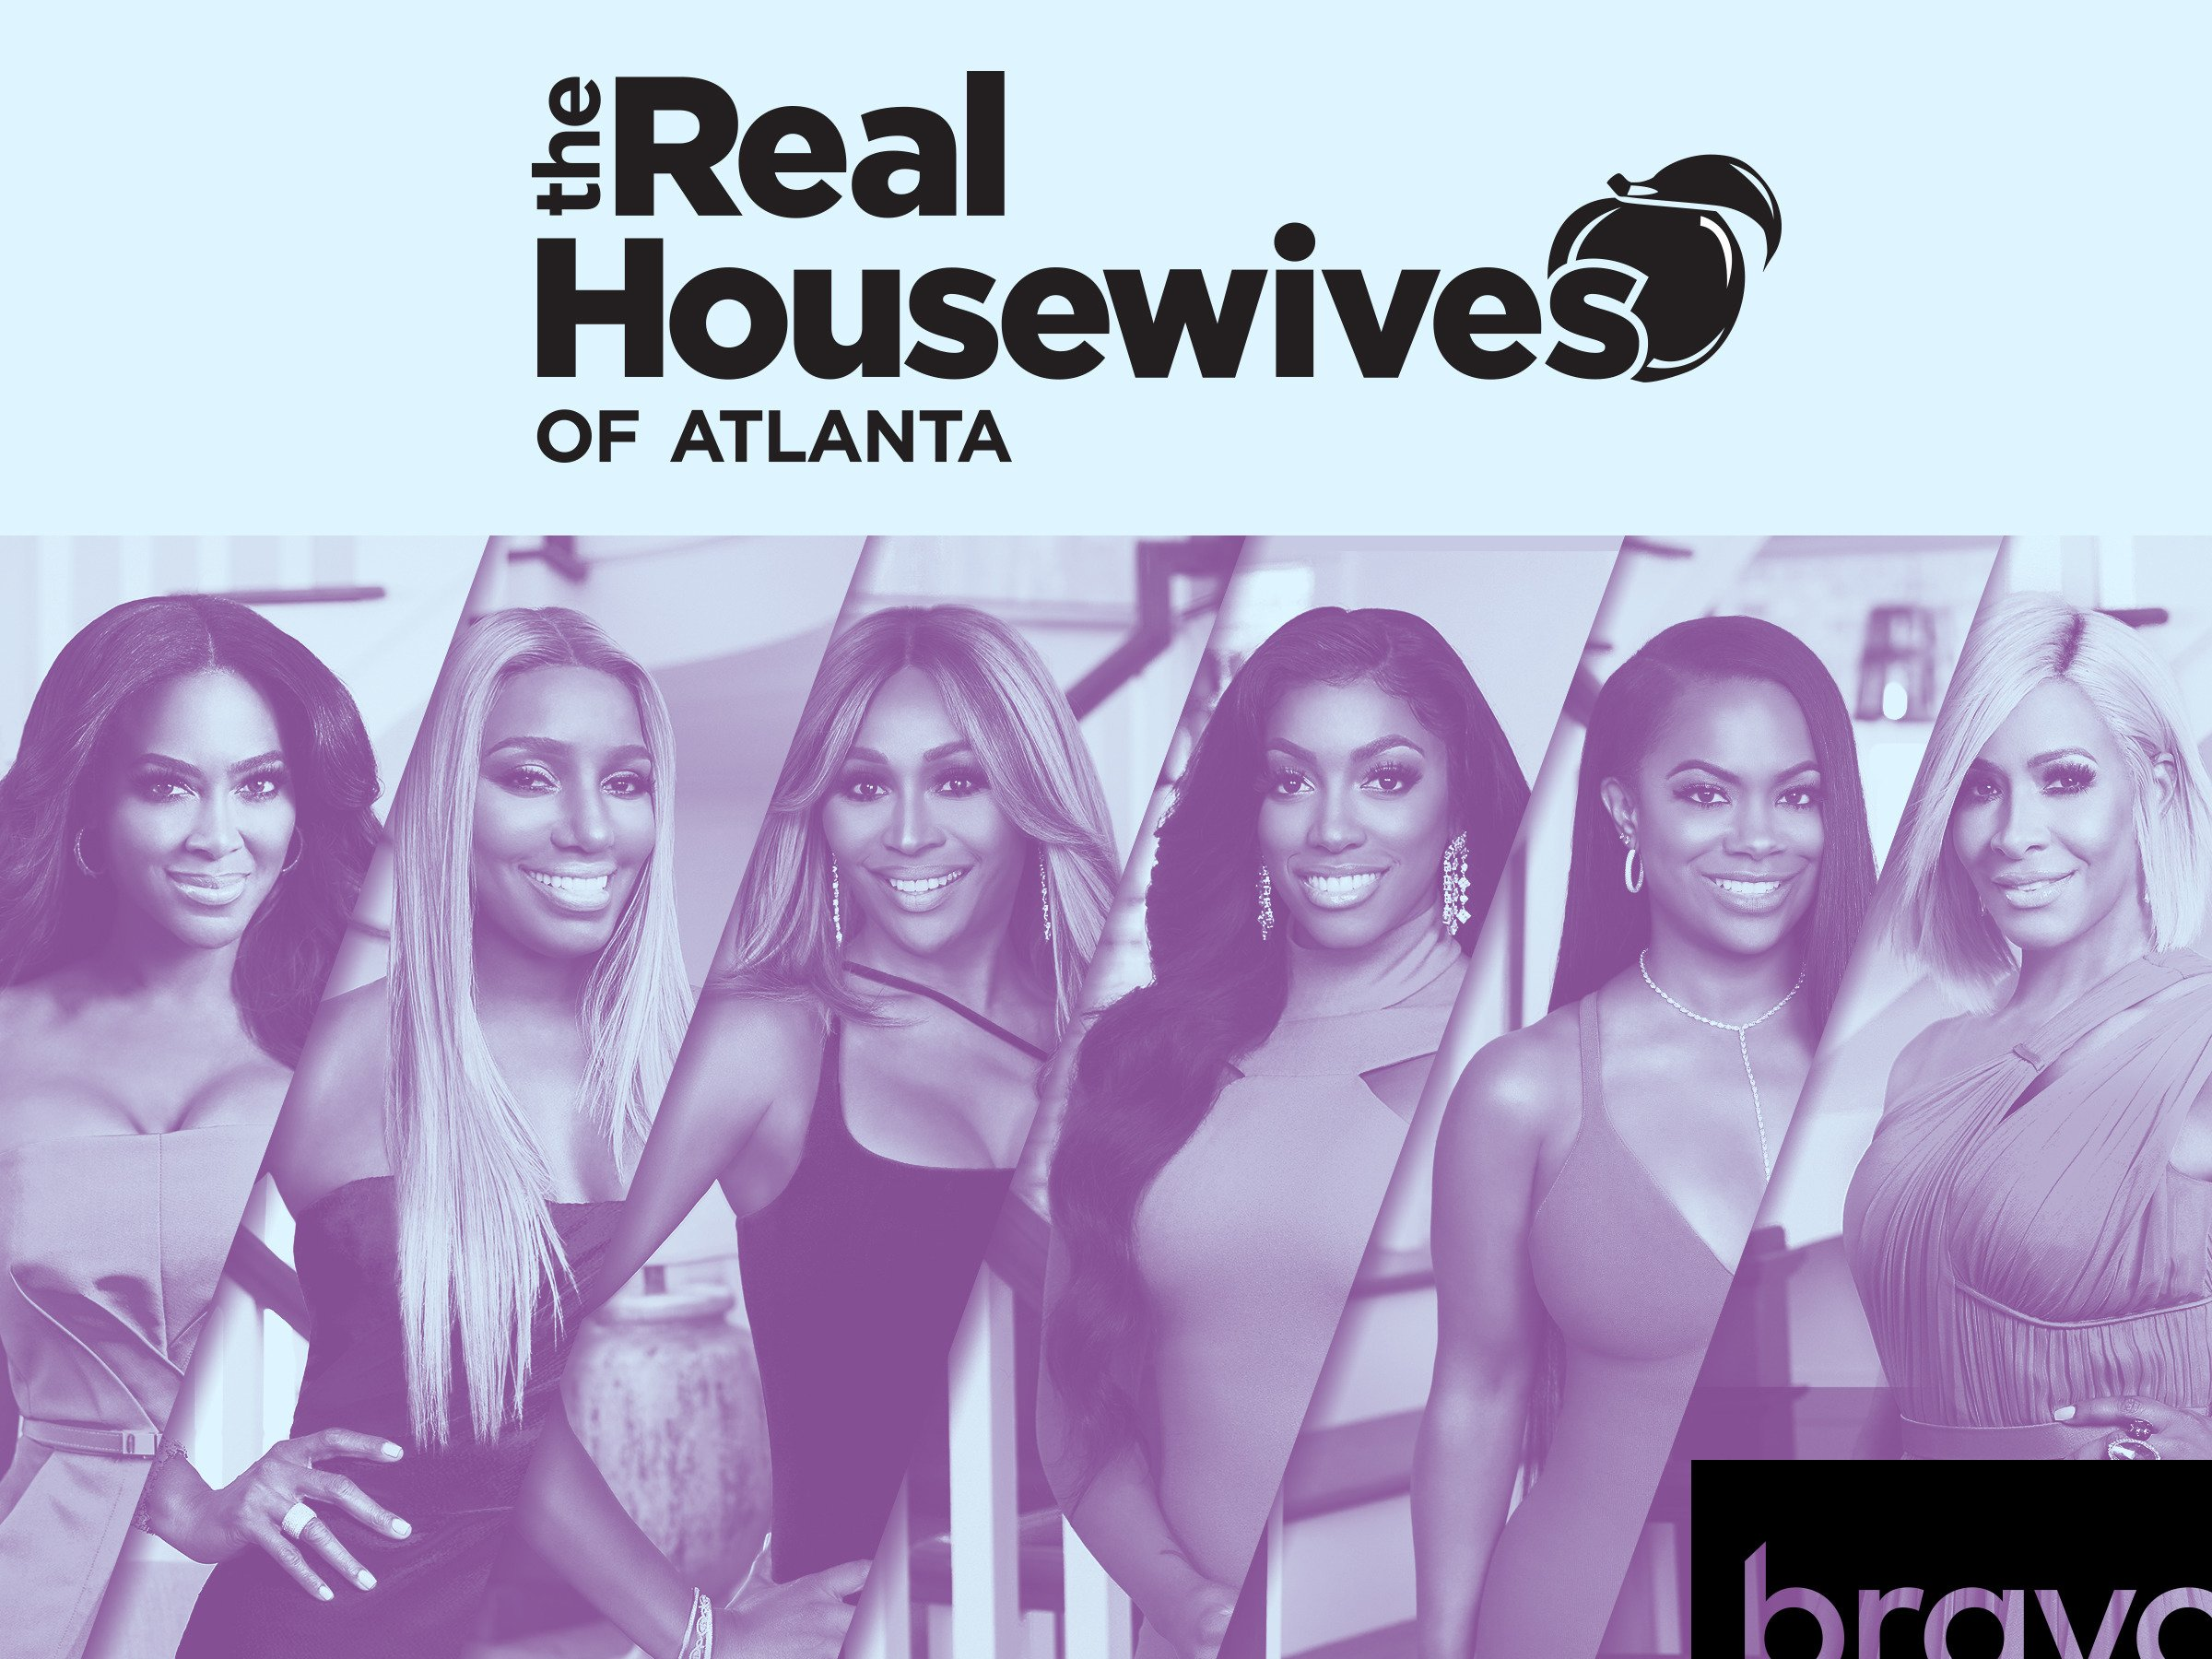 braxton family values season 6 episode 16 putlockers